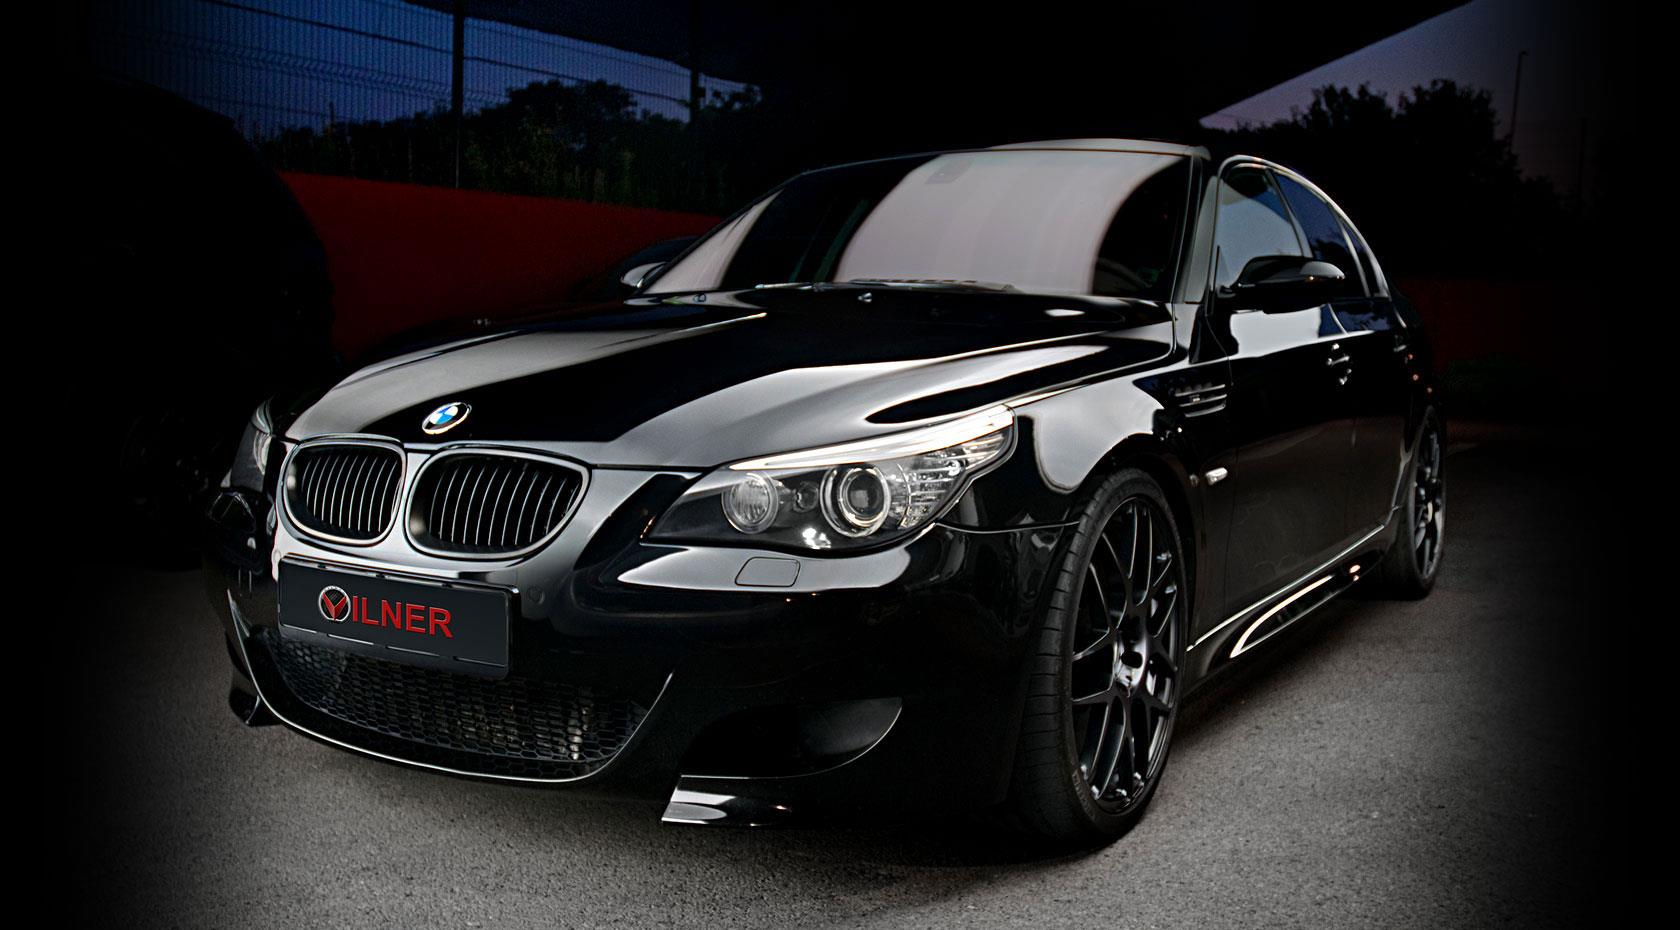 vilner trims the e60 bmw m5 bmw car tuning. Black Bedroom Furniture Sets. Home Design Ideas